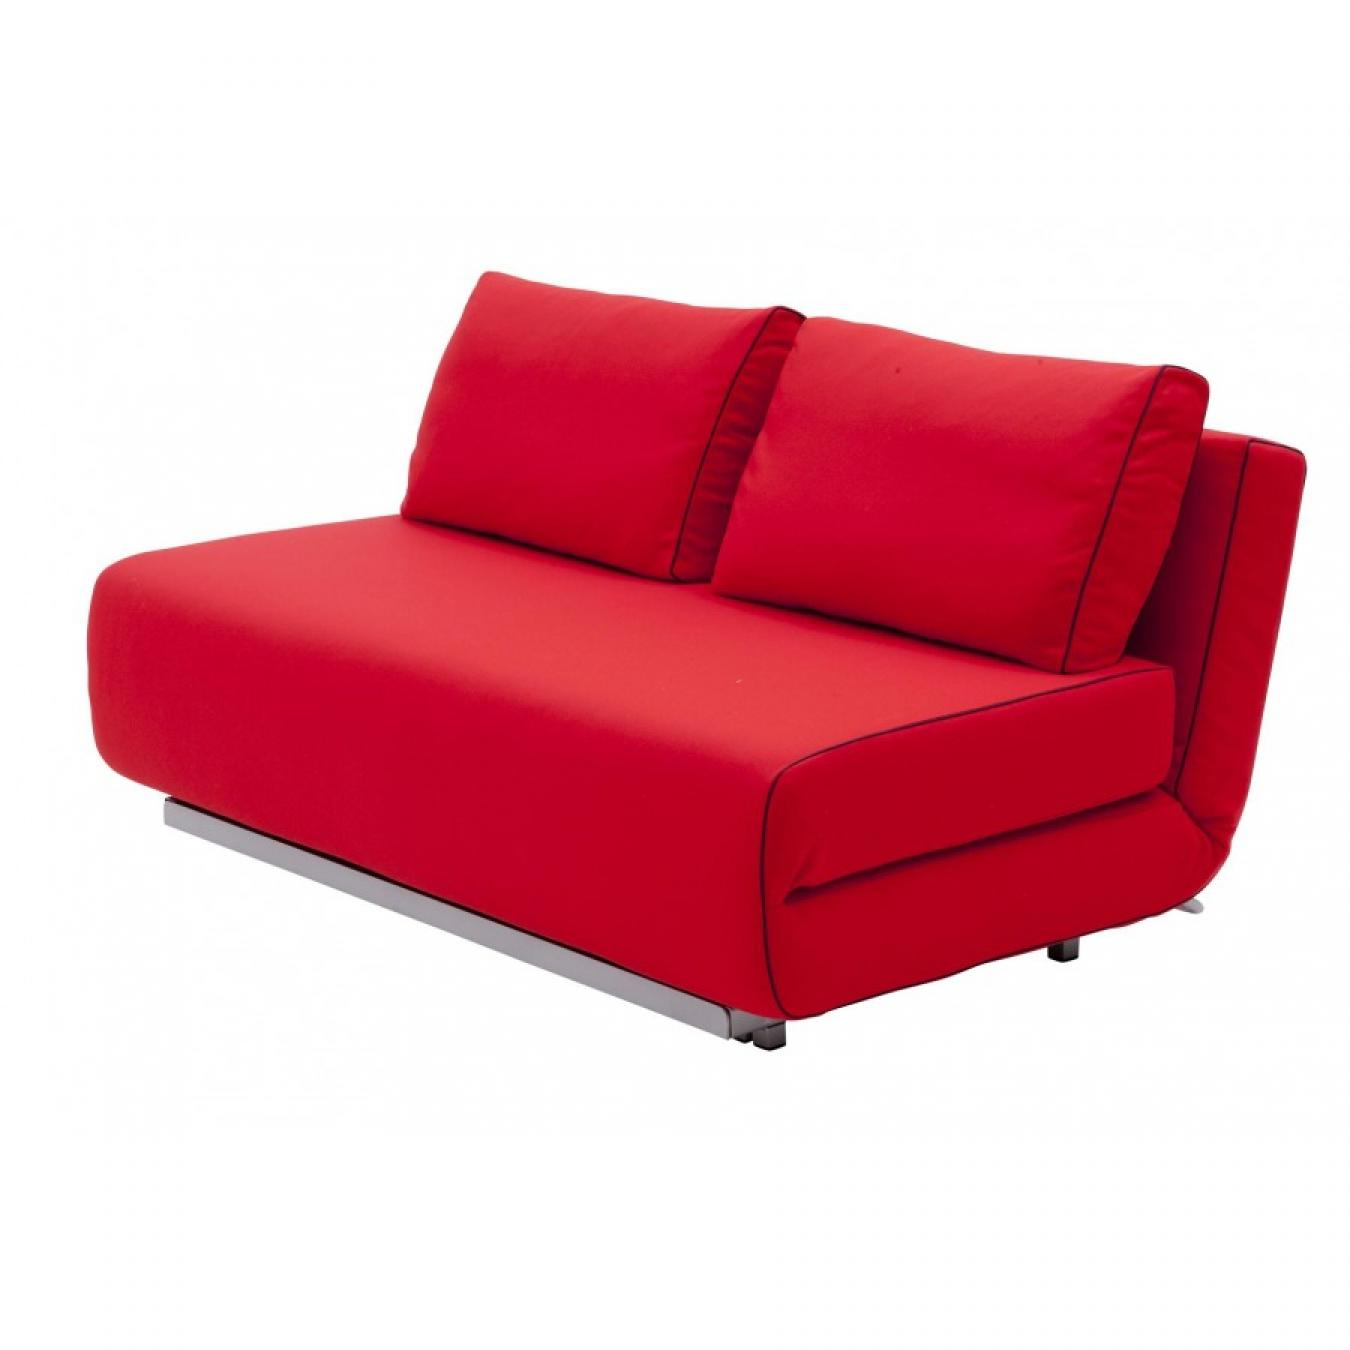 Canap vittorio conforama top canaps vittorio uac with for Canape modulable pas cher saint denis